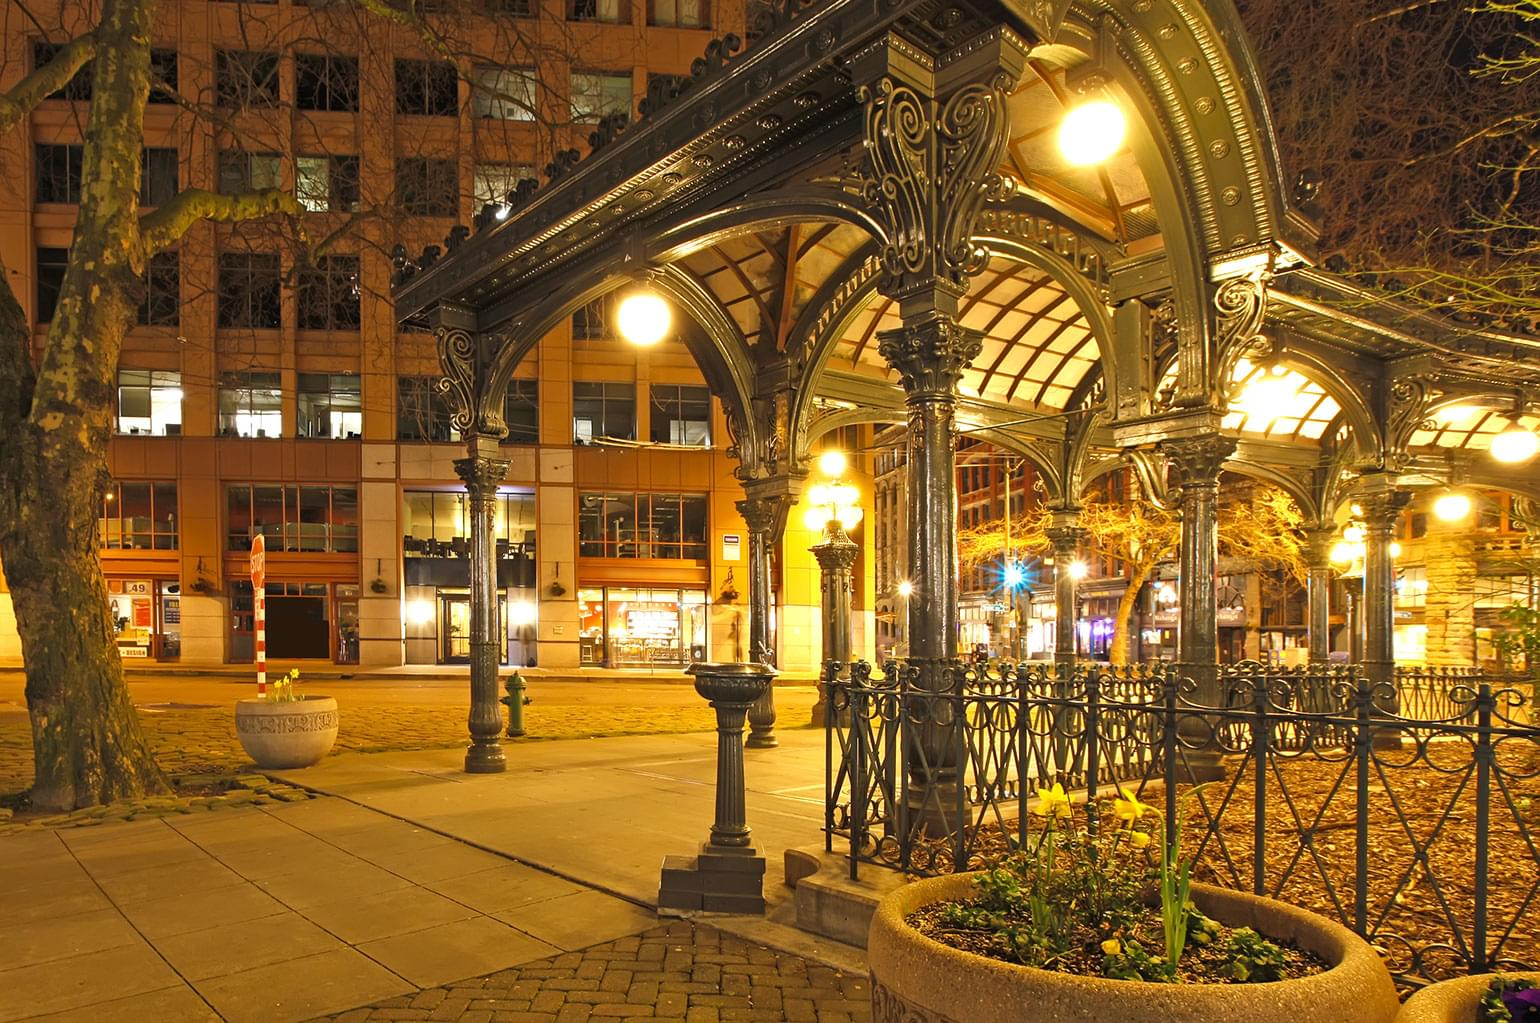 Pioneer square in Seattle at early night.